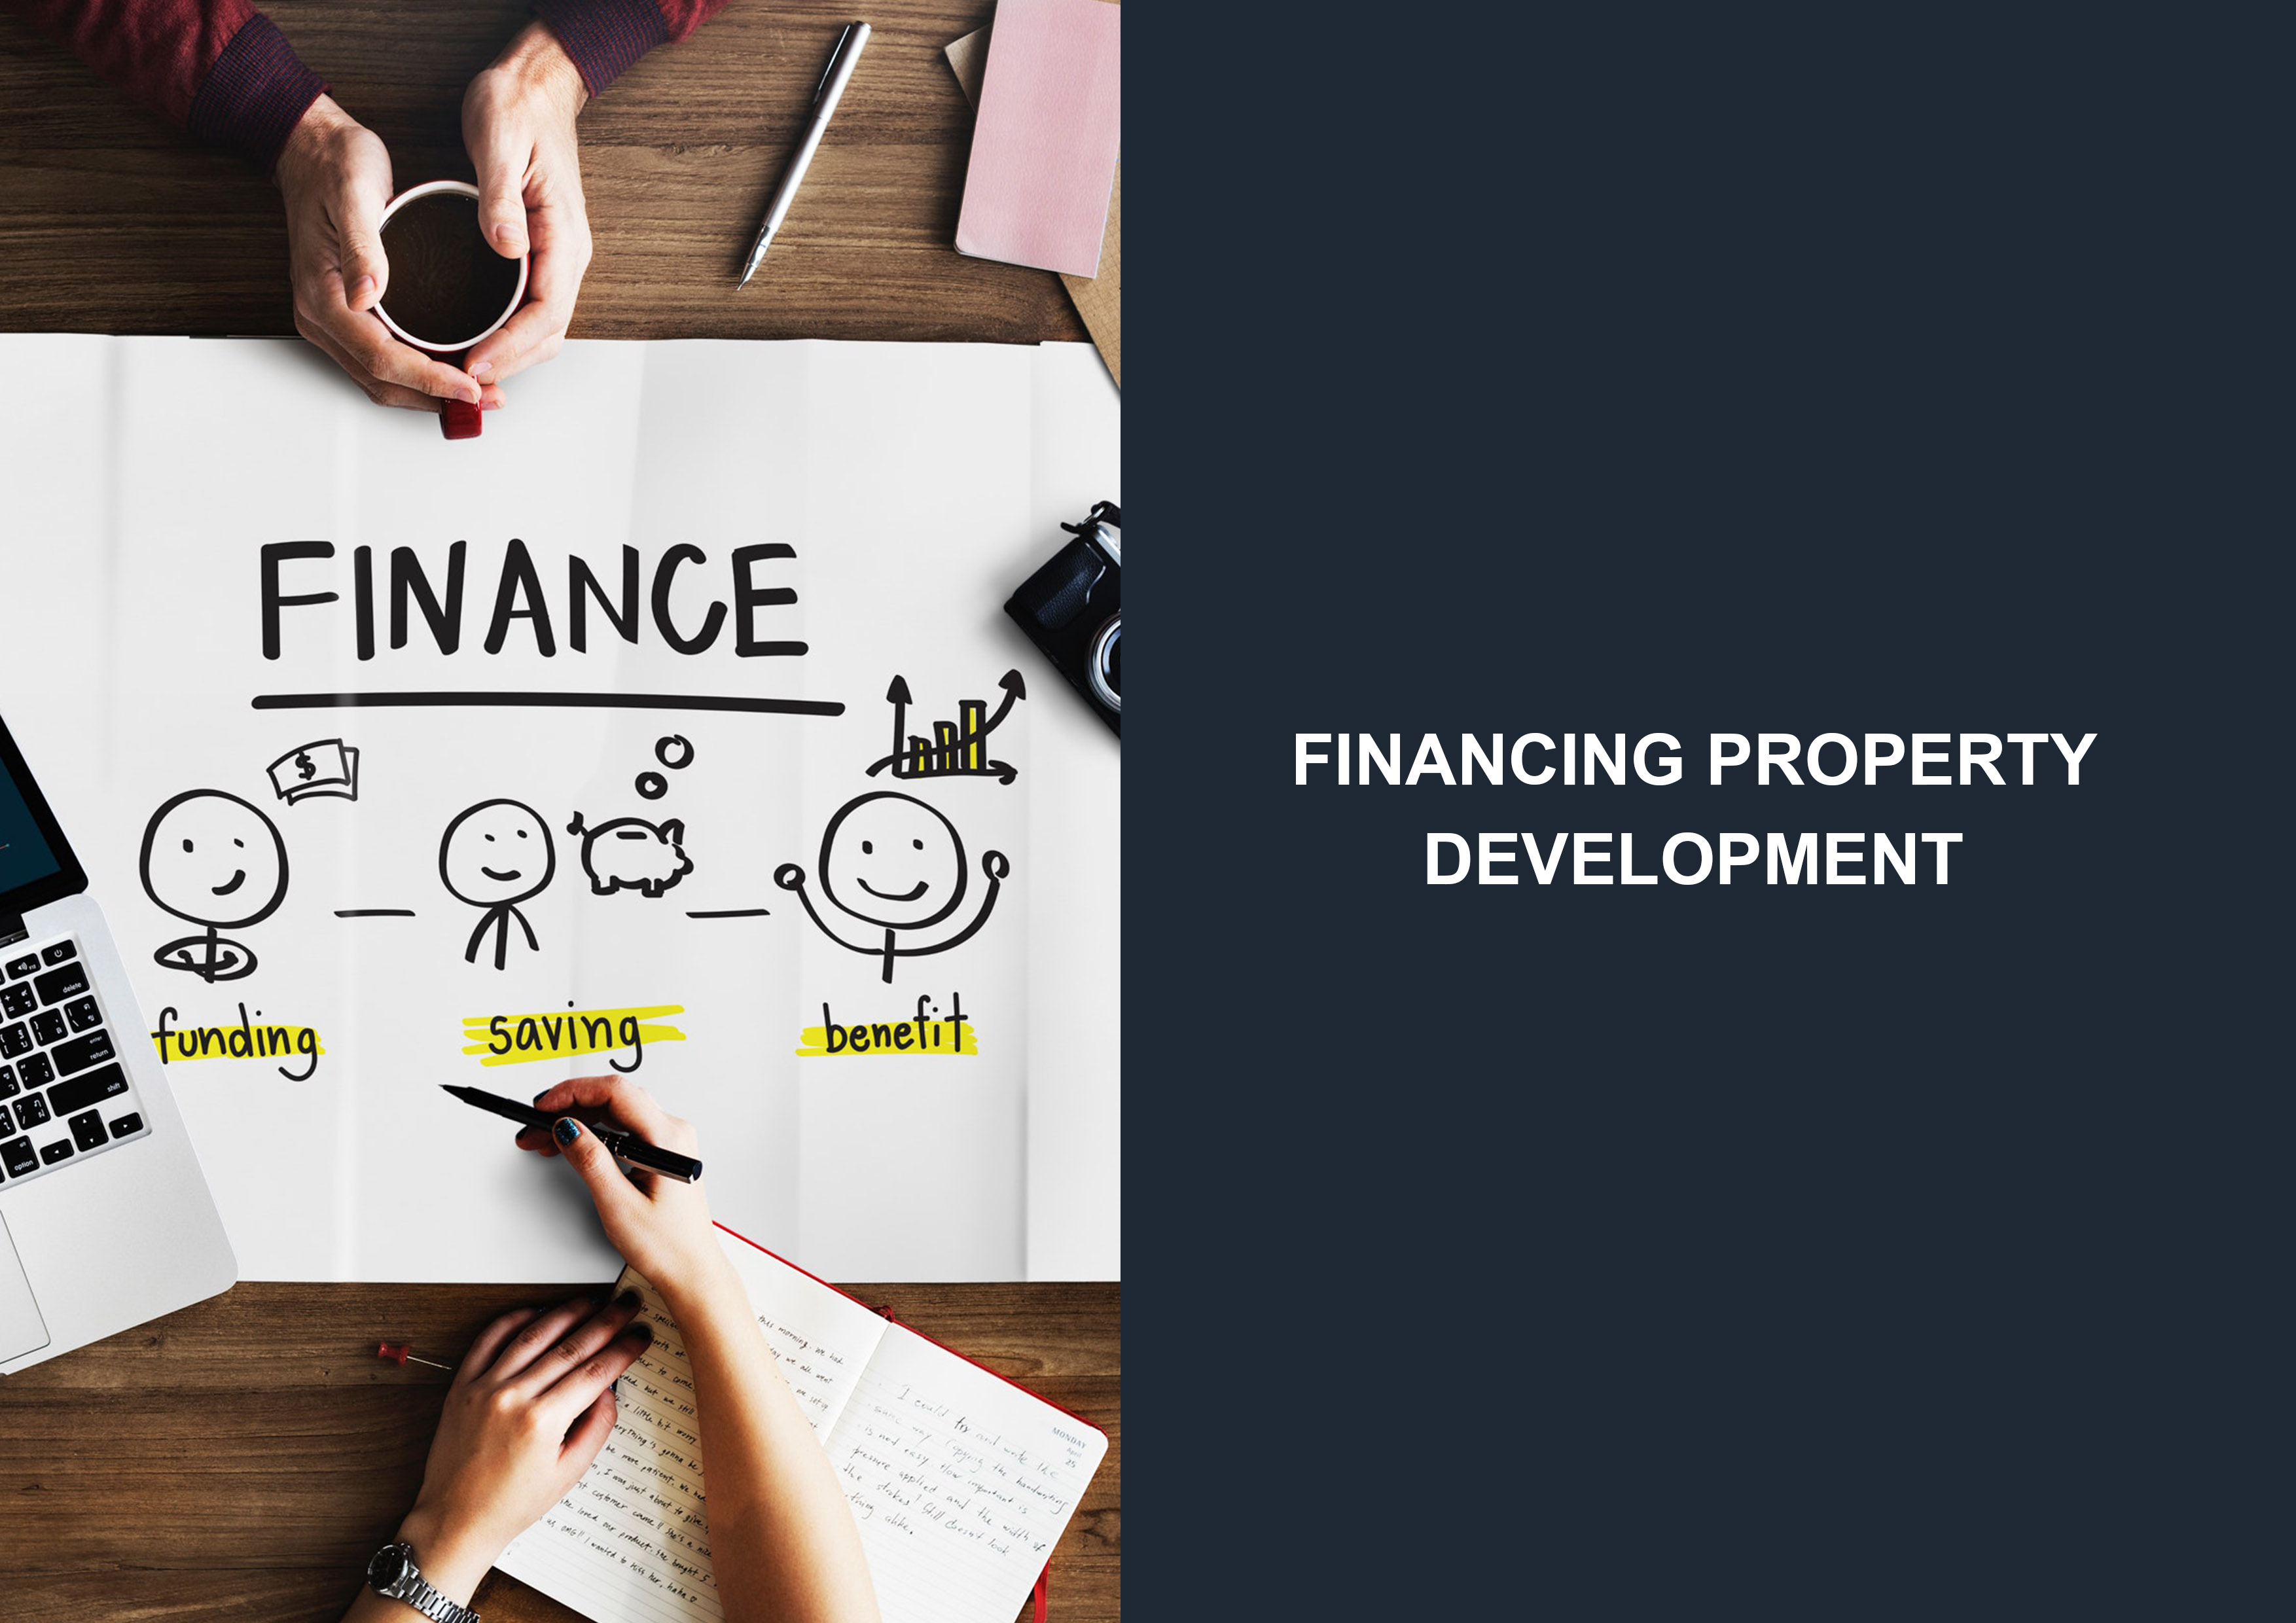 Financing Property Development